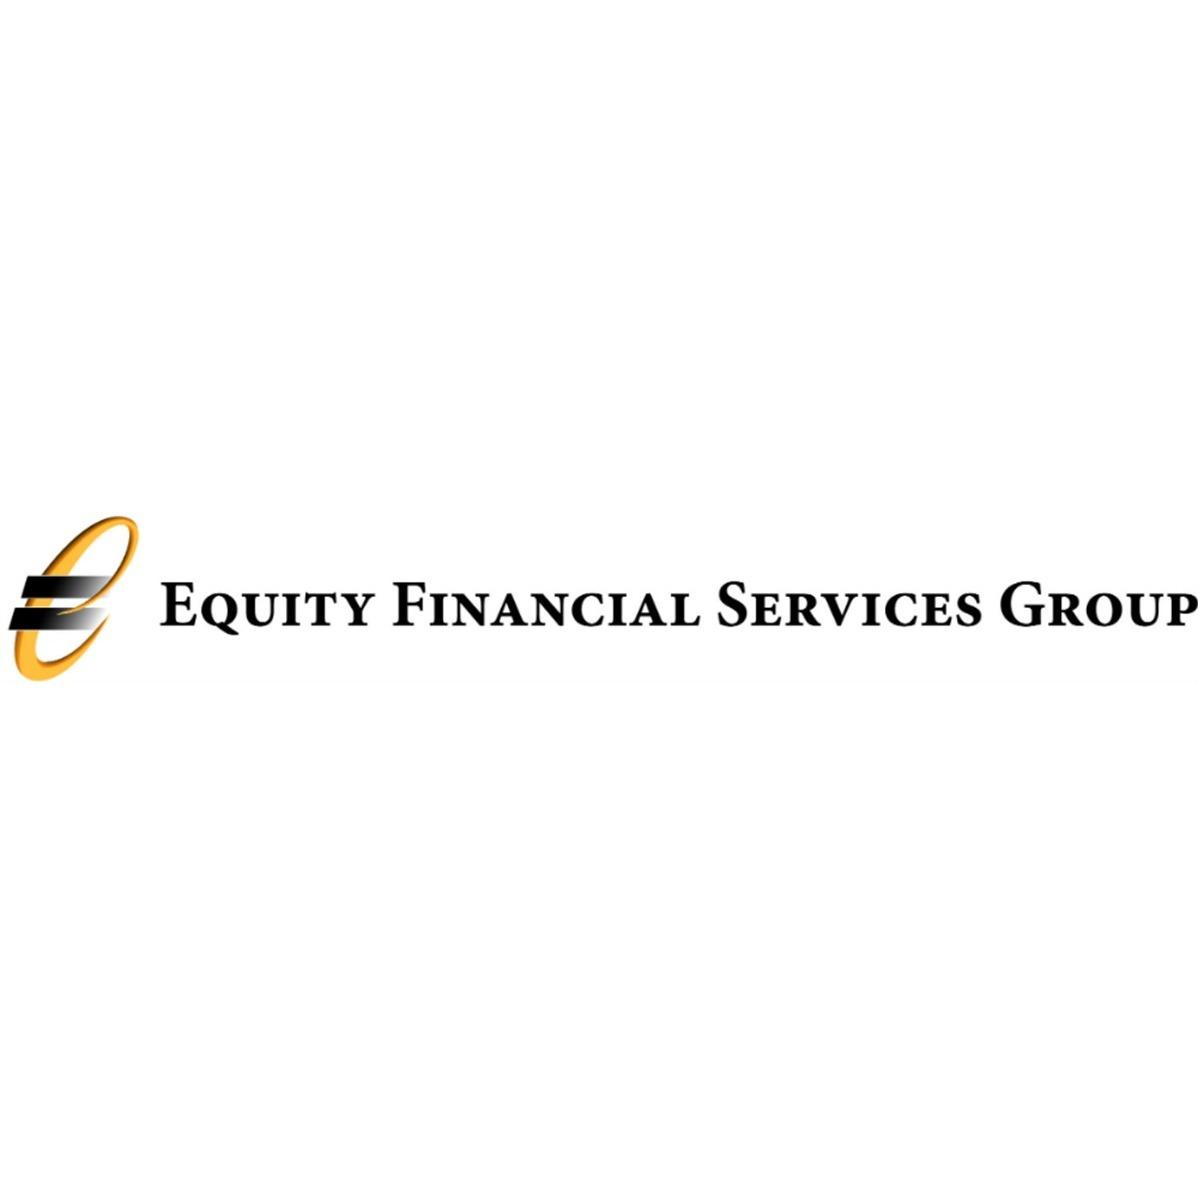 Equity Financial Services Group